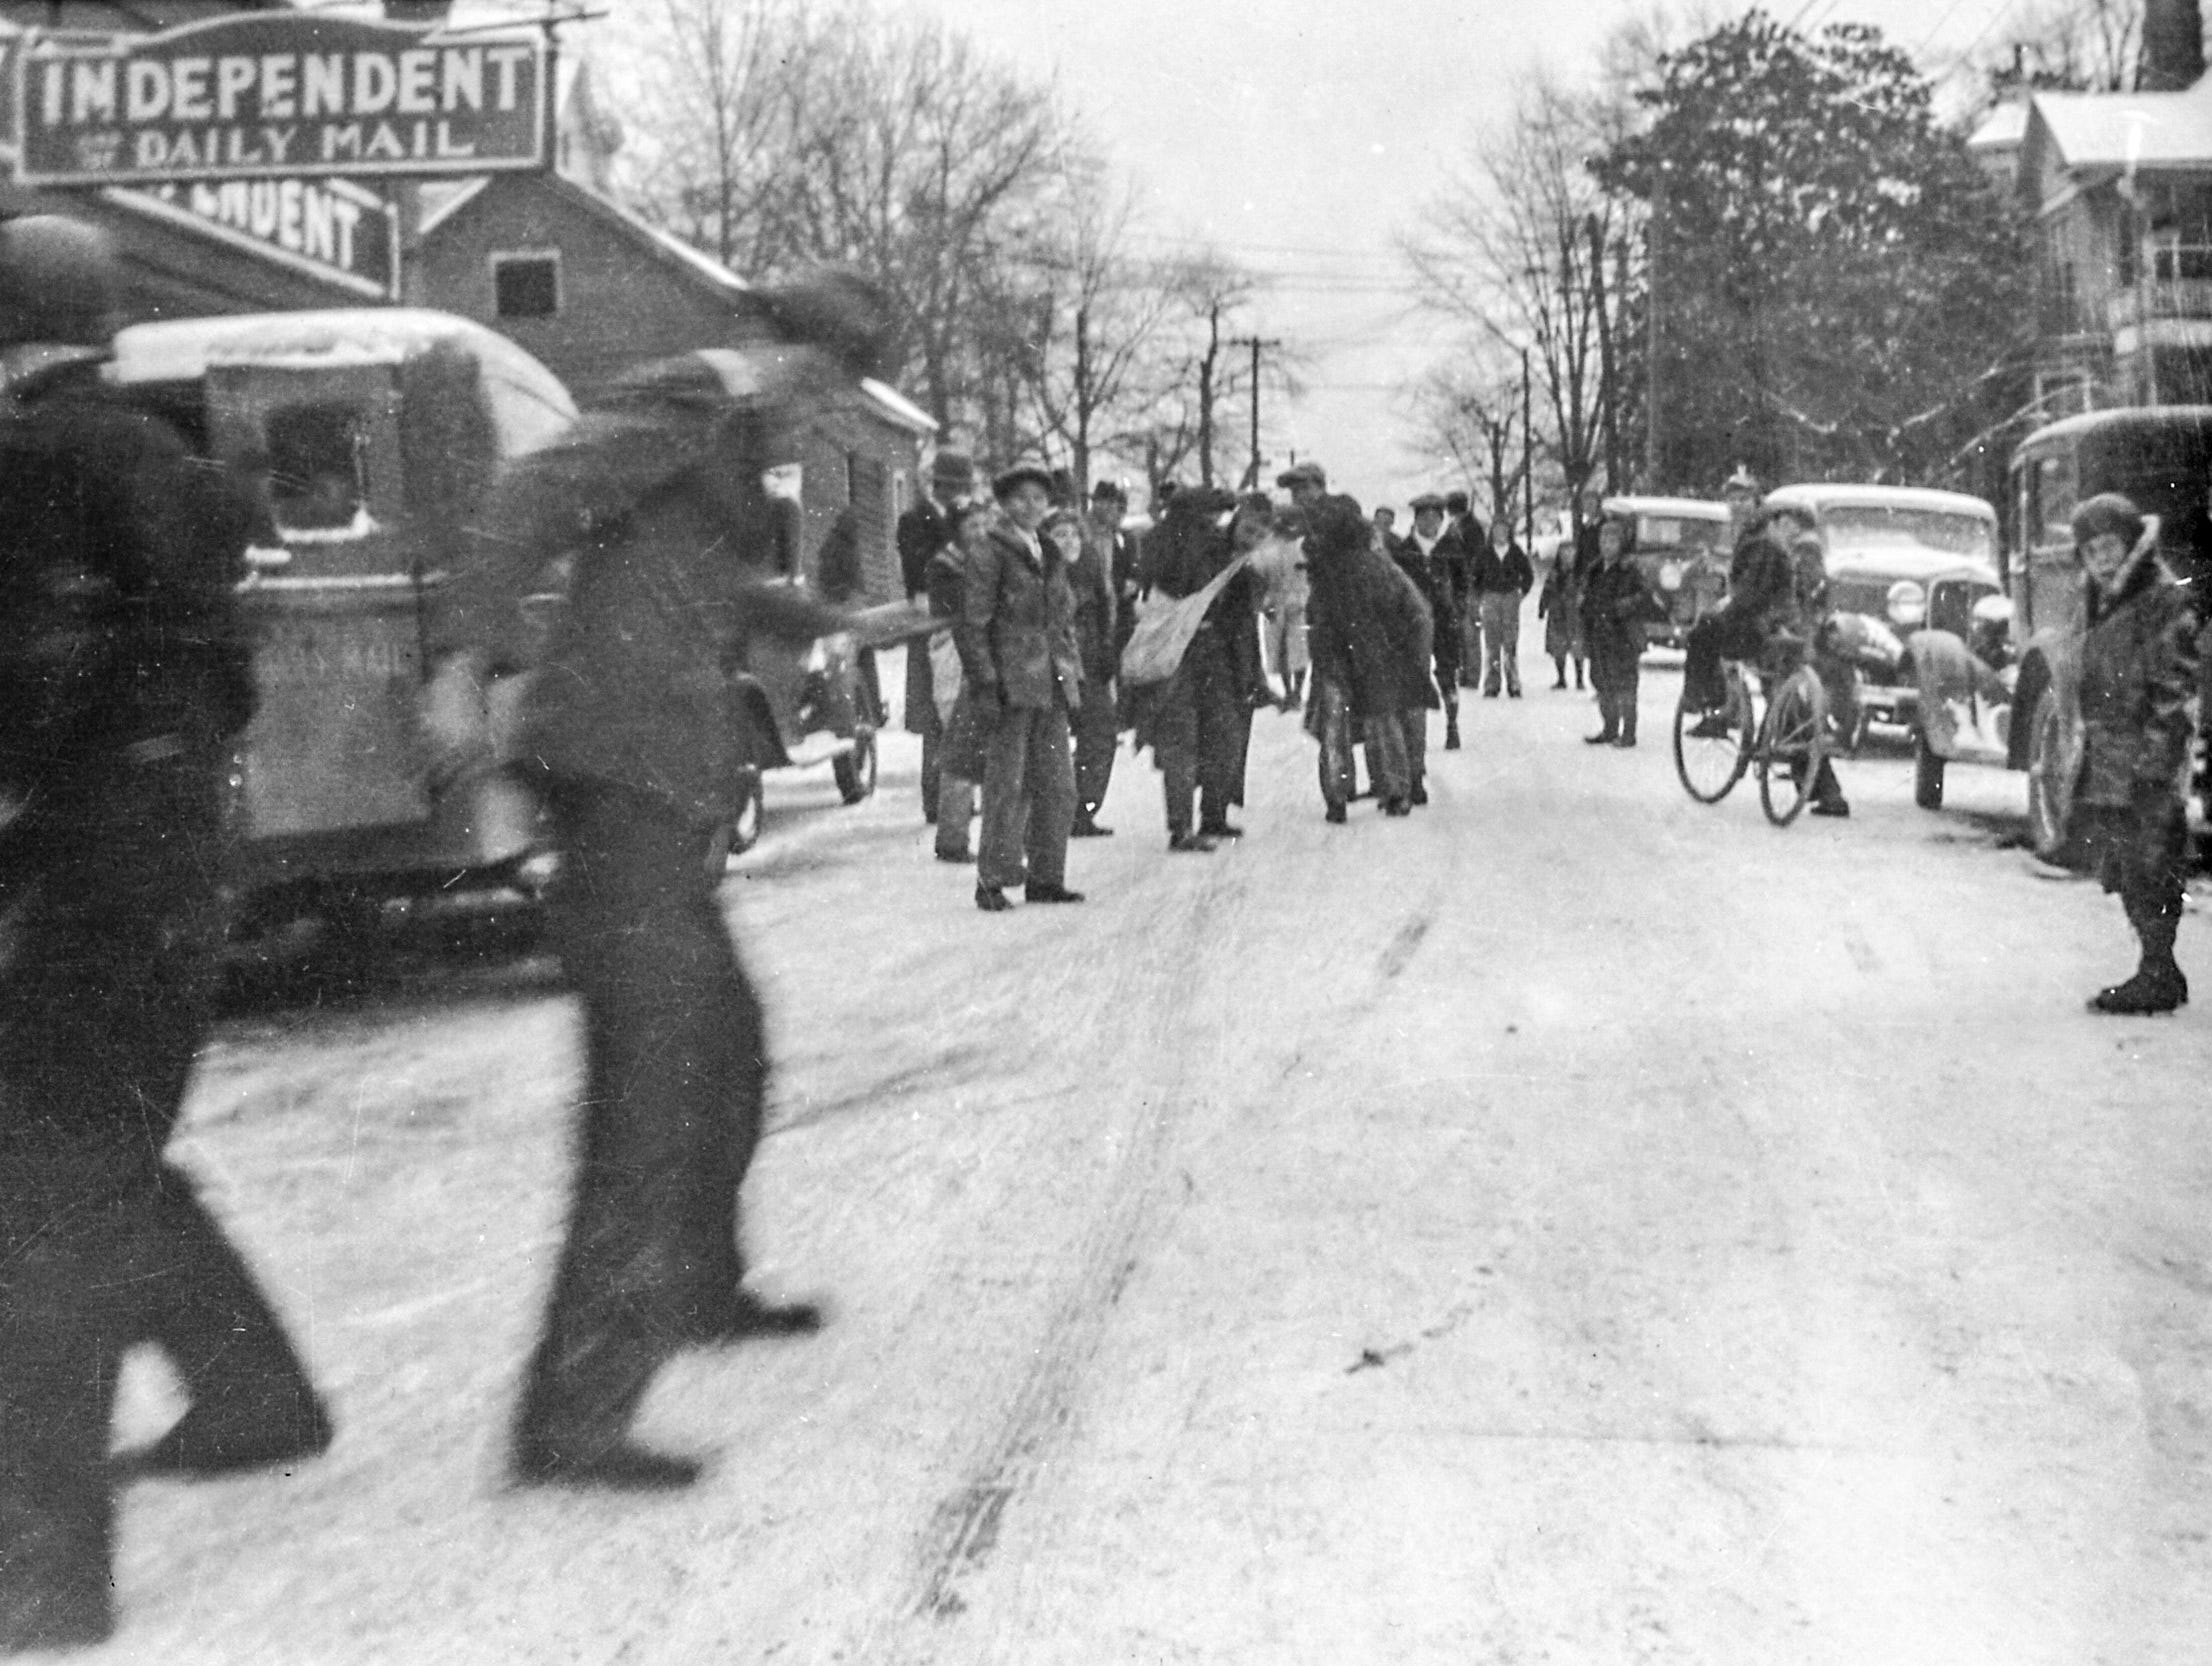 People walk around in the snow covered street along East Market Street in front of the Daily Mail and Independent in downtown Anderson in 1945.